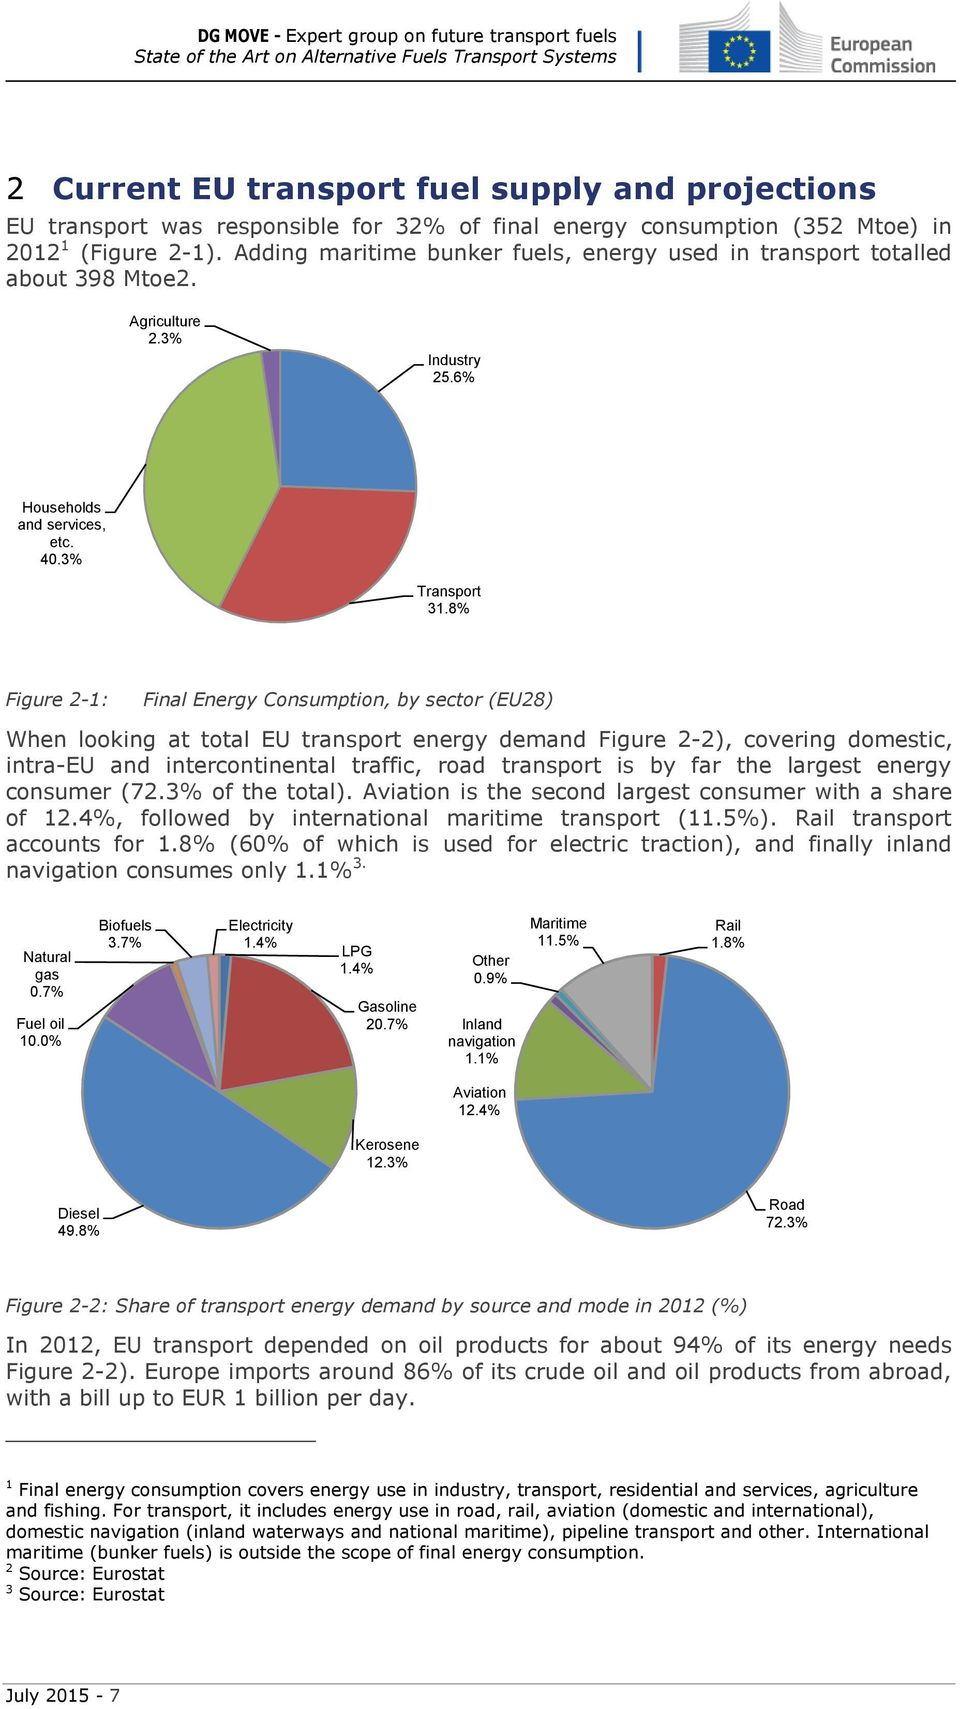 8% Figure 2-1: Final Energy Consumption, by sector (EU28) When looking at total EU transport energy demand Figure 2-2), covering domestic, intra-eu and intercontinental traffic, road transport is by